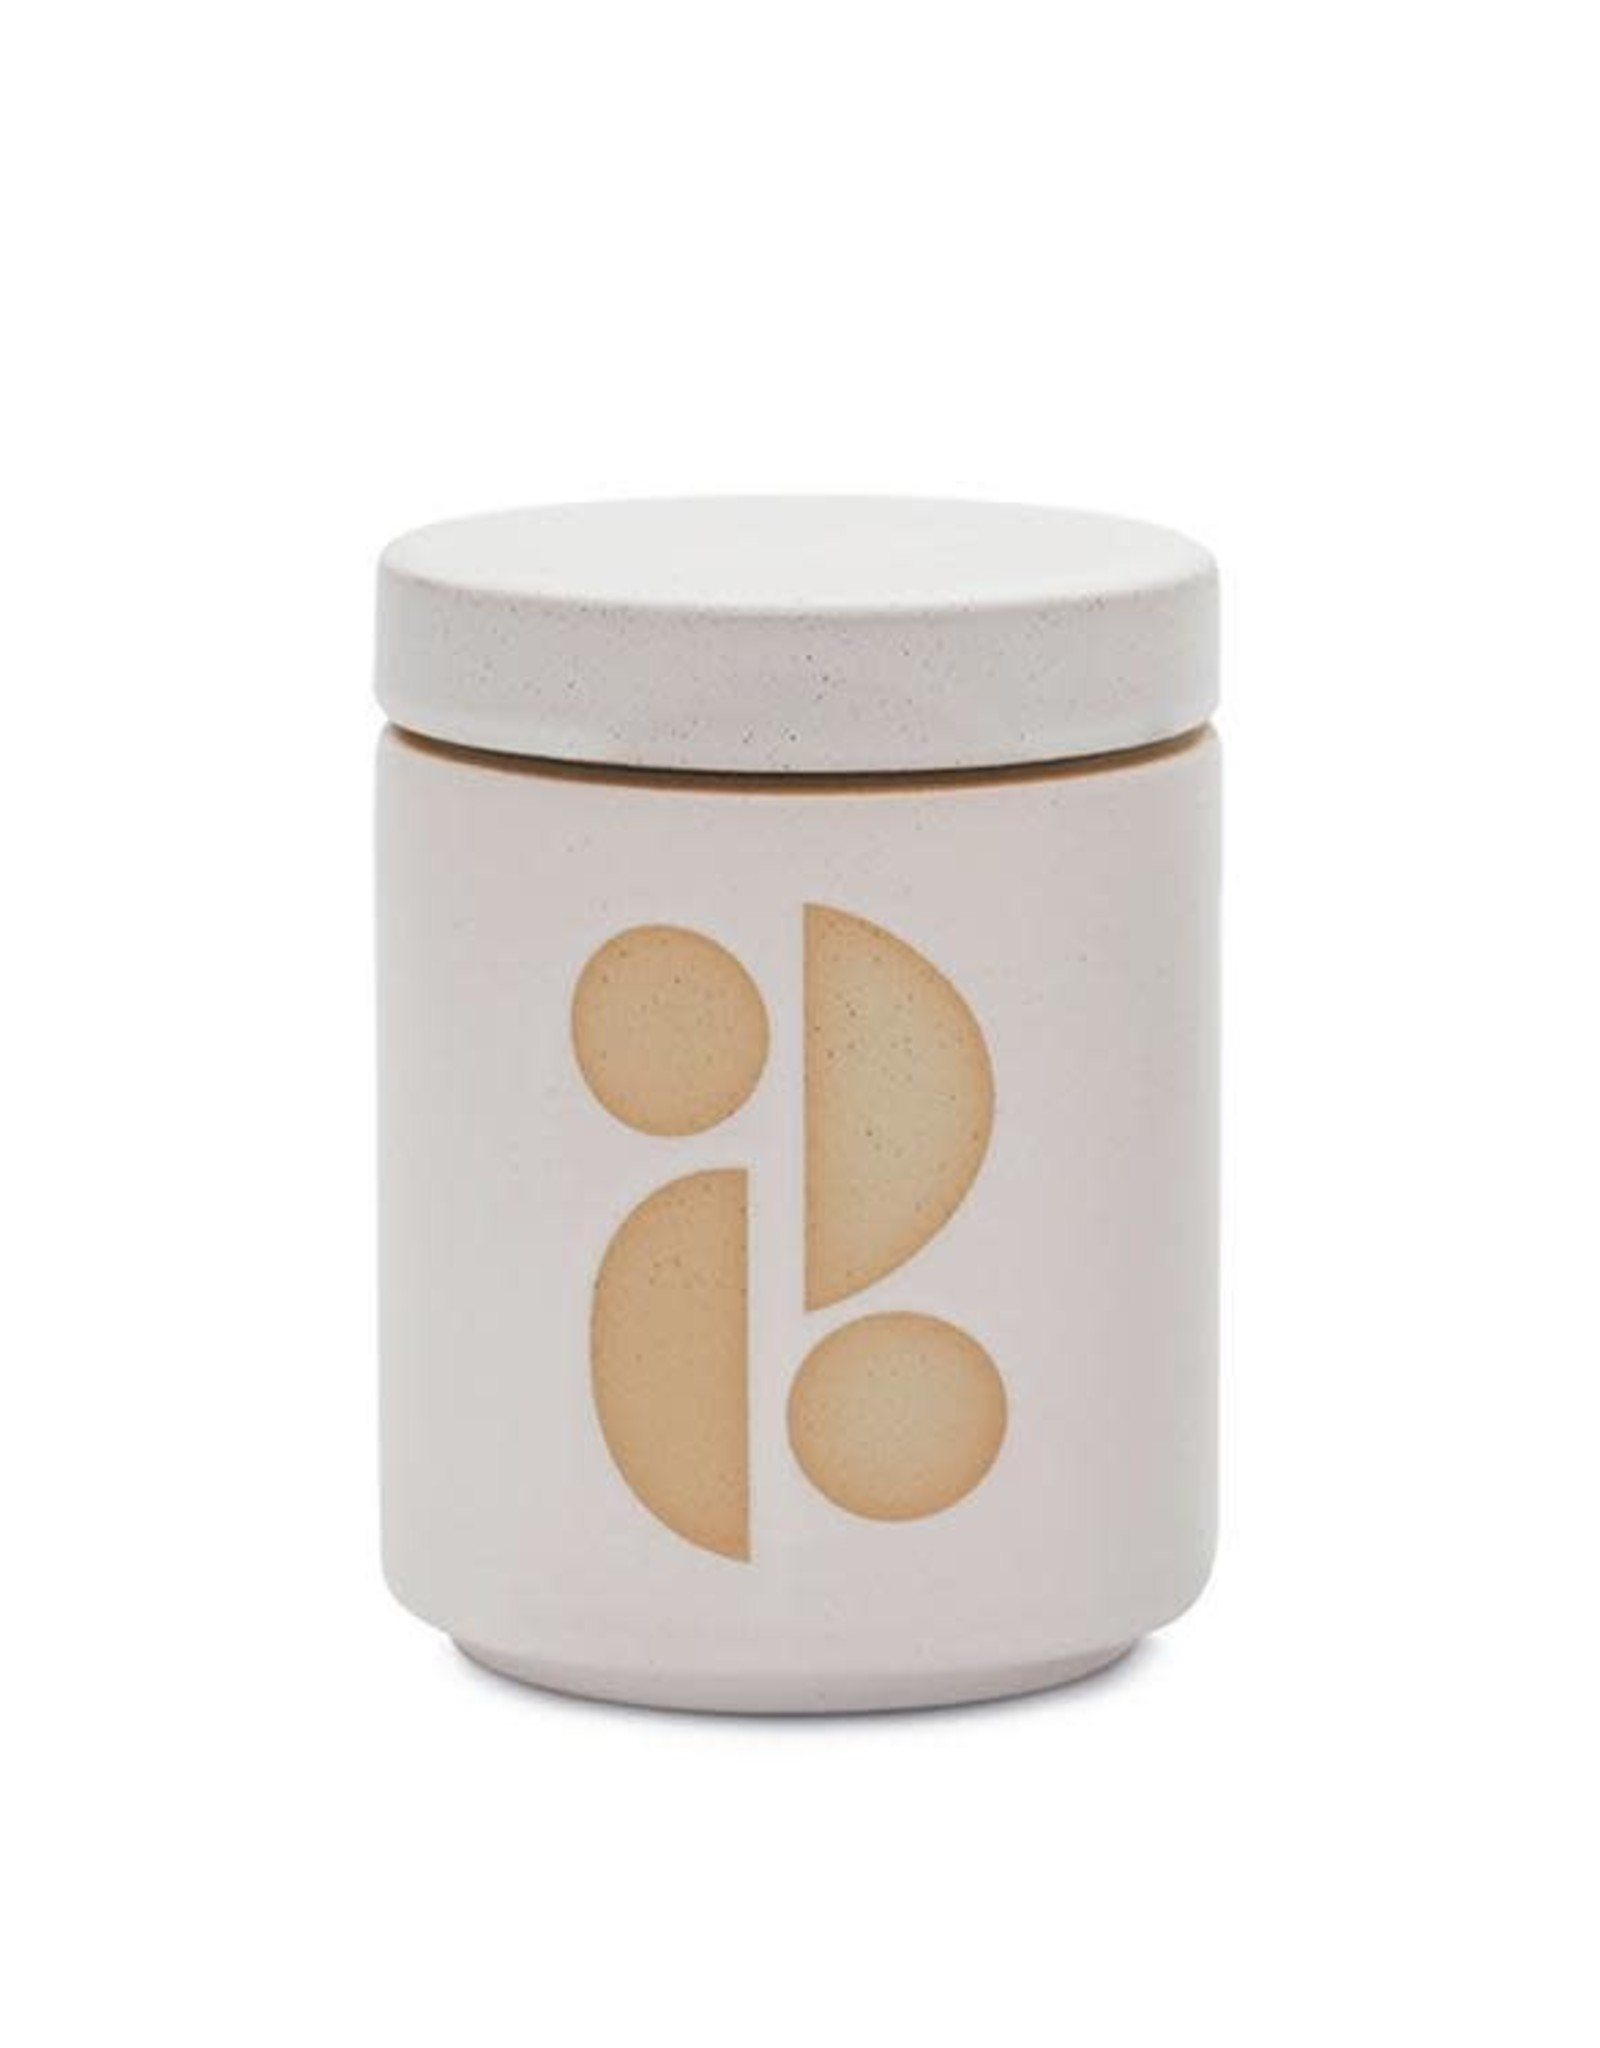 CONTAINER CANDLE FORM TOBACCO FLOWER WHITE CERAMIC LARGE 12OZ